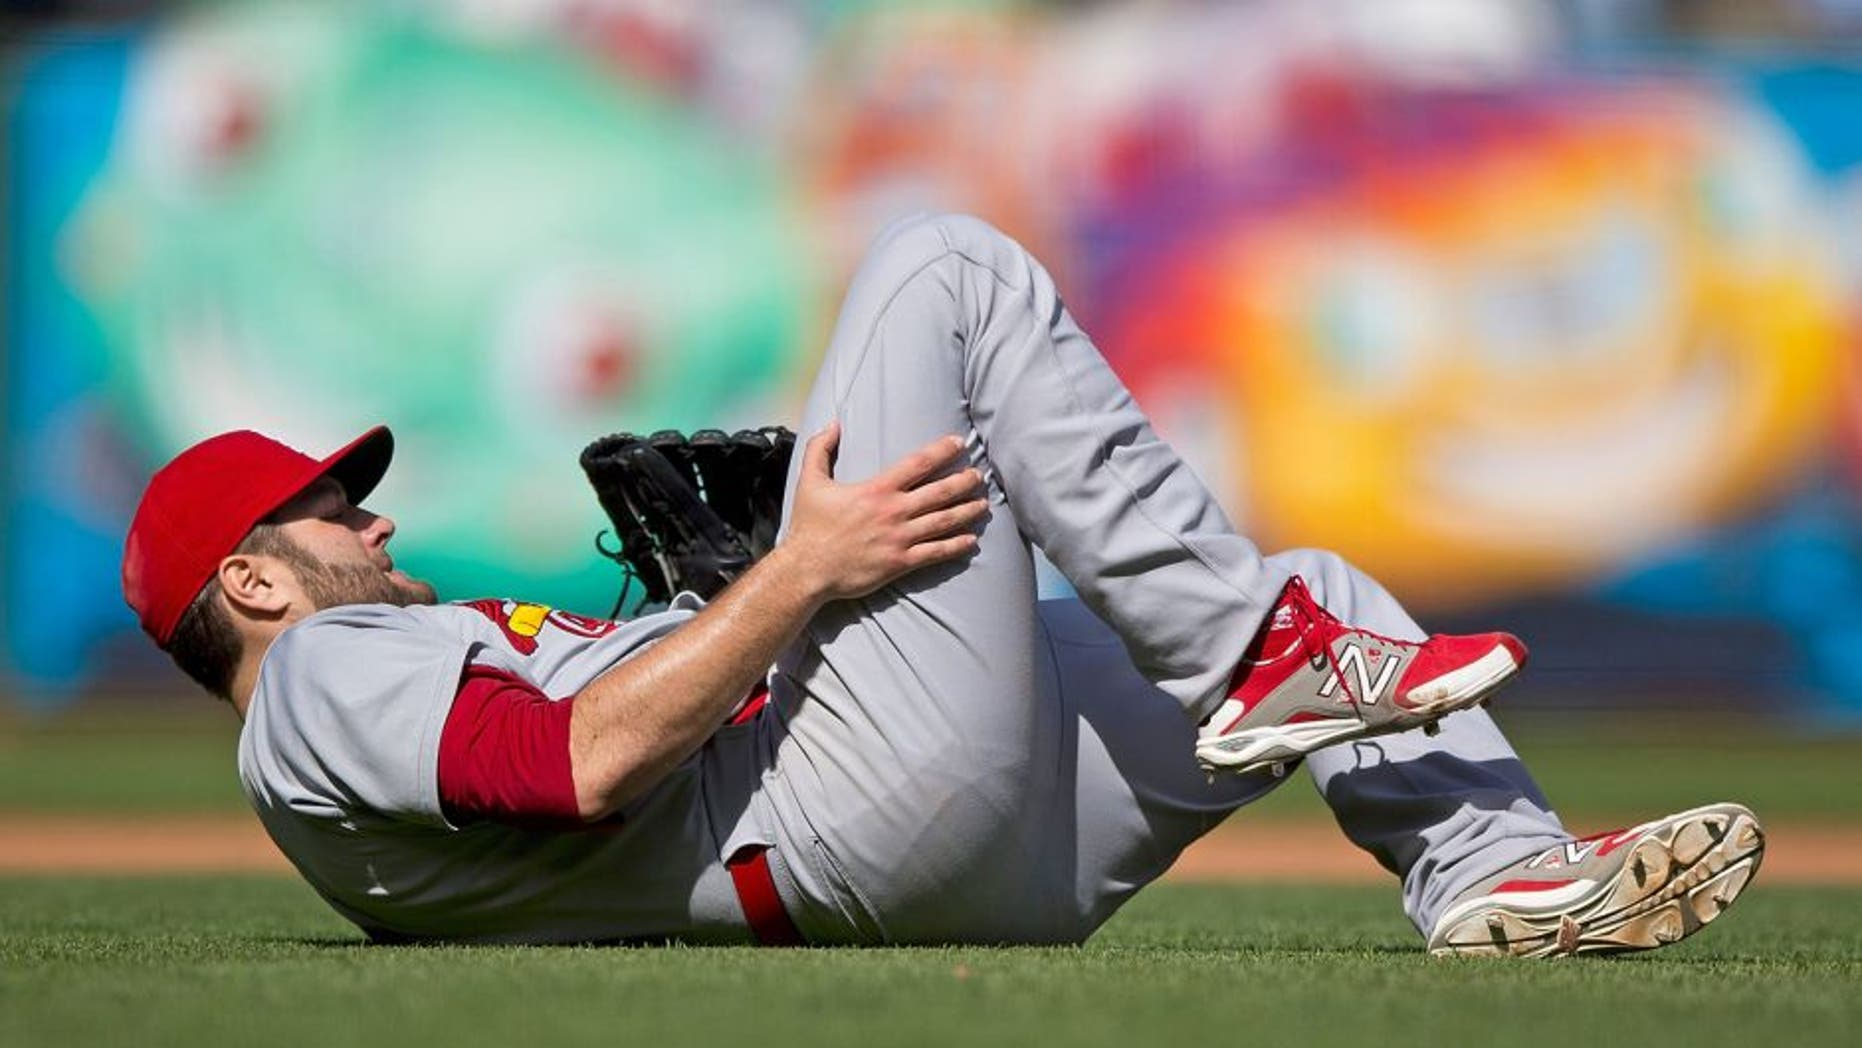 SAN FRANCISCO, CA - AUGUST 29: Lance Lynn #31 of the St. Louis Cardinals injures his leg after throwing to first base against the San Francisco Giants during the eighth inning at AT&T Park on August 29, 2015 in San Francisco, California. The St. Louis Cardinals defeated the San Francisco Giants 6-0. (Photo by Jason O. Watson/Getty Images)